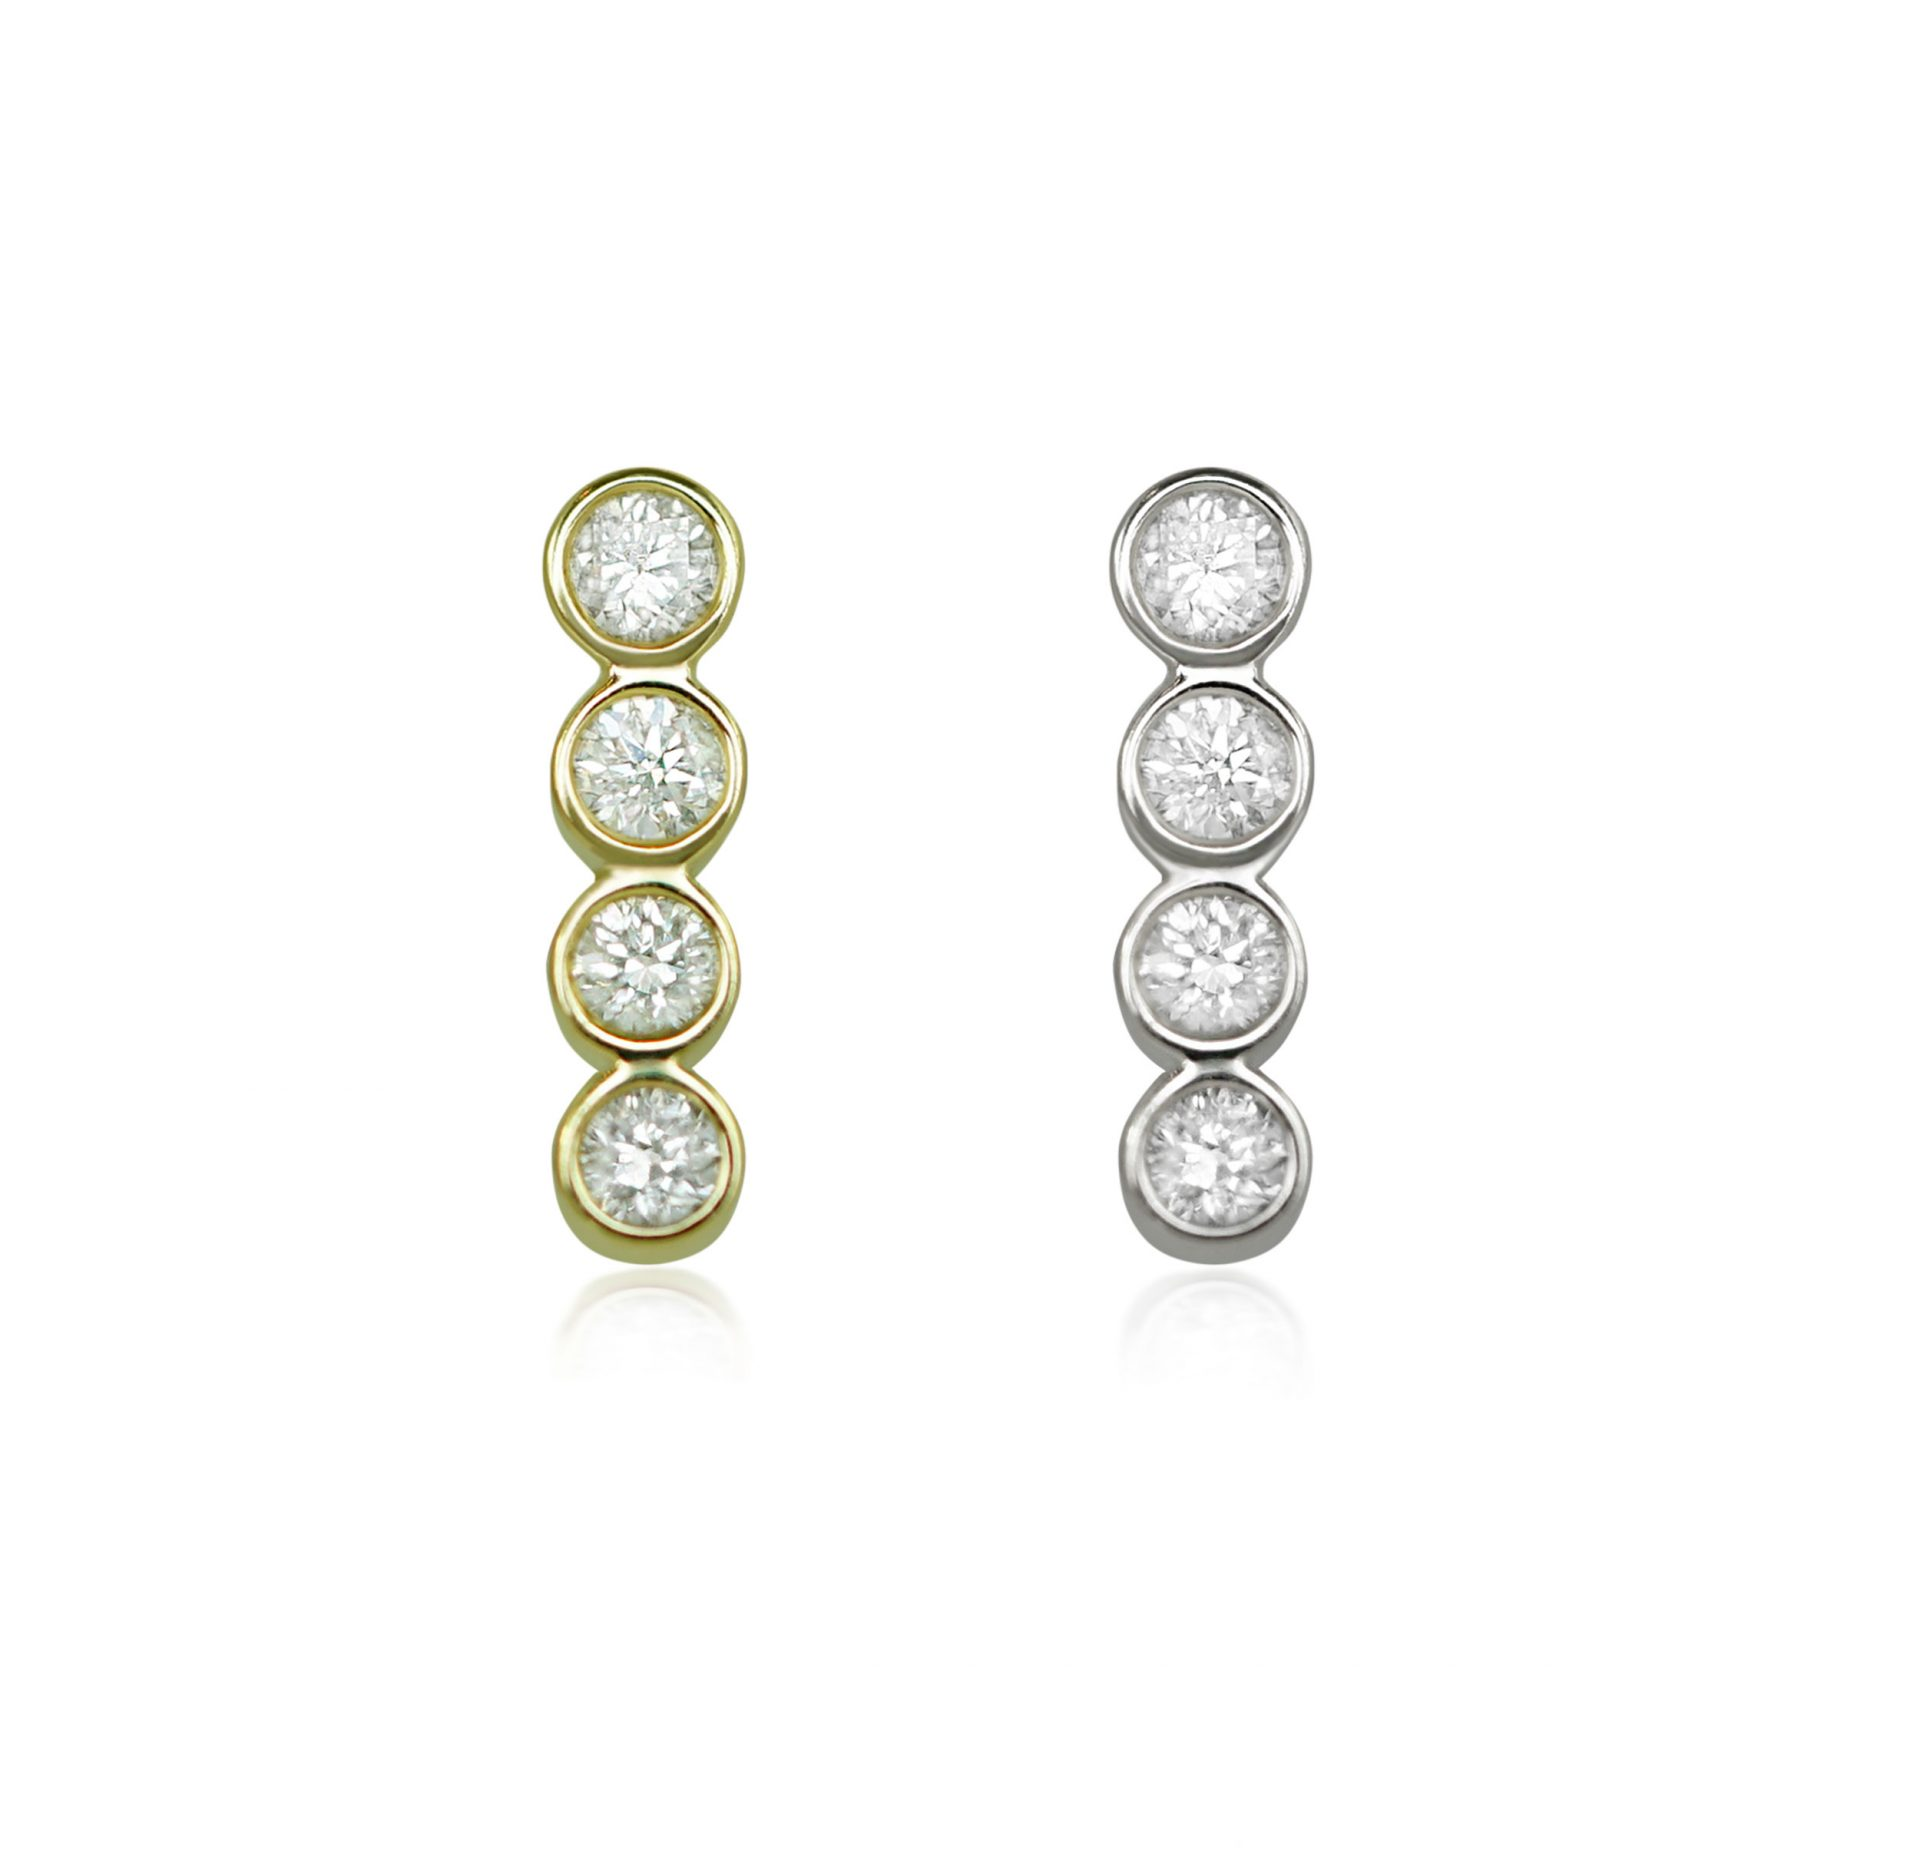 piercing-cartilage-earring-vertical-bar-diamond-yellow-white-18k-solid-gold-stud-lena-cohen